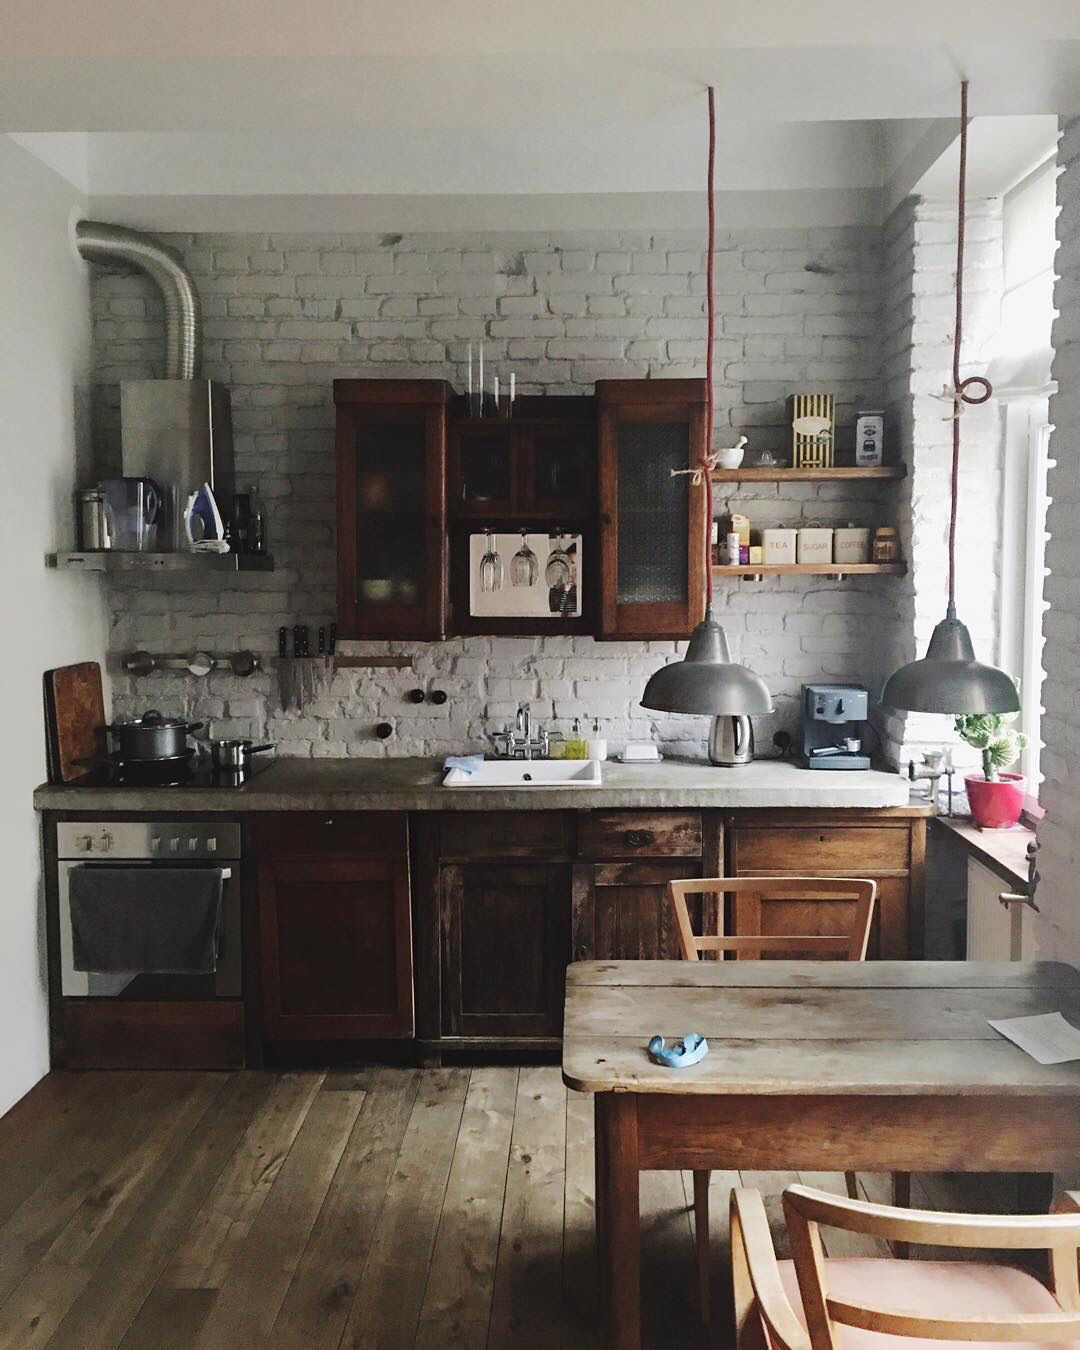 Cozy Kitchen: When I Grown Tired Of The Sterile White Kitchen. Worn Wood